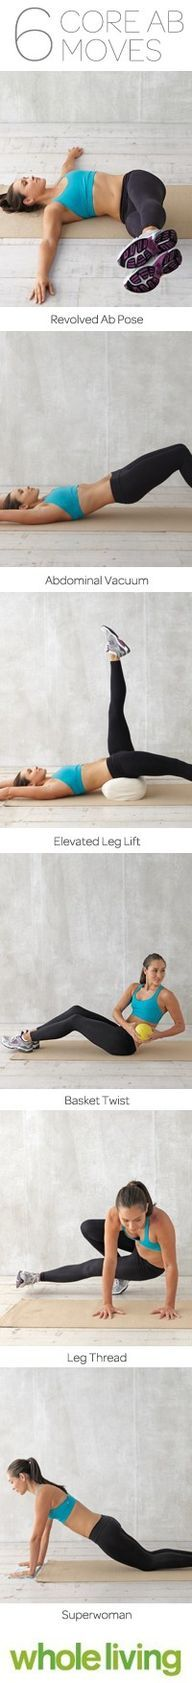 6 Core Ab Moves For a flat belly